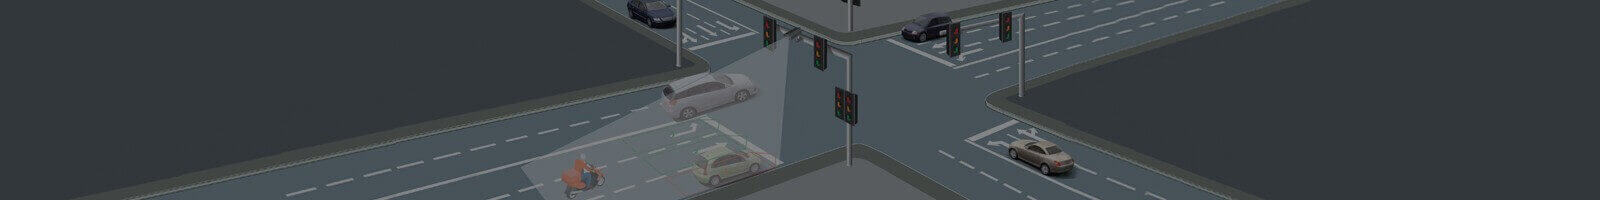 TrafScan®- Vehicle Detection Camera